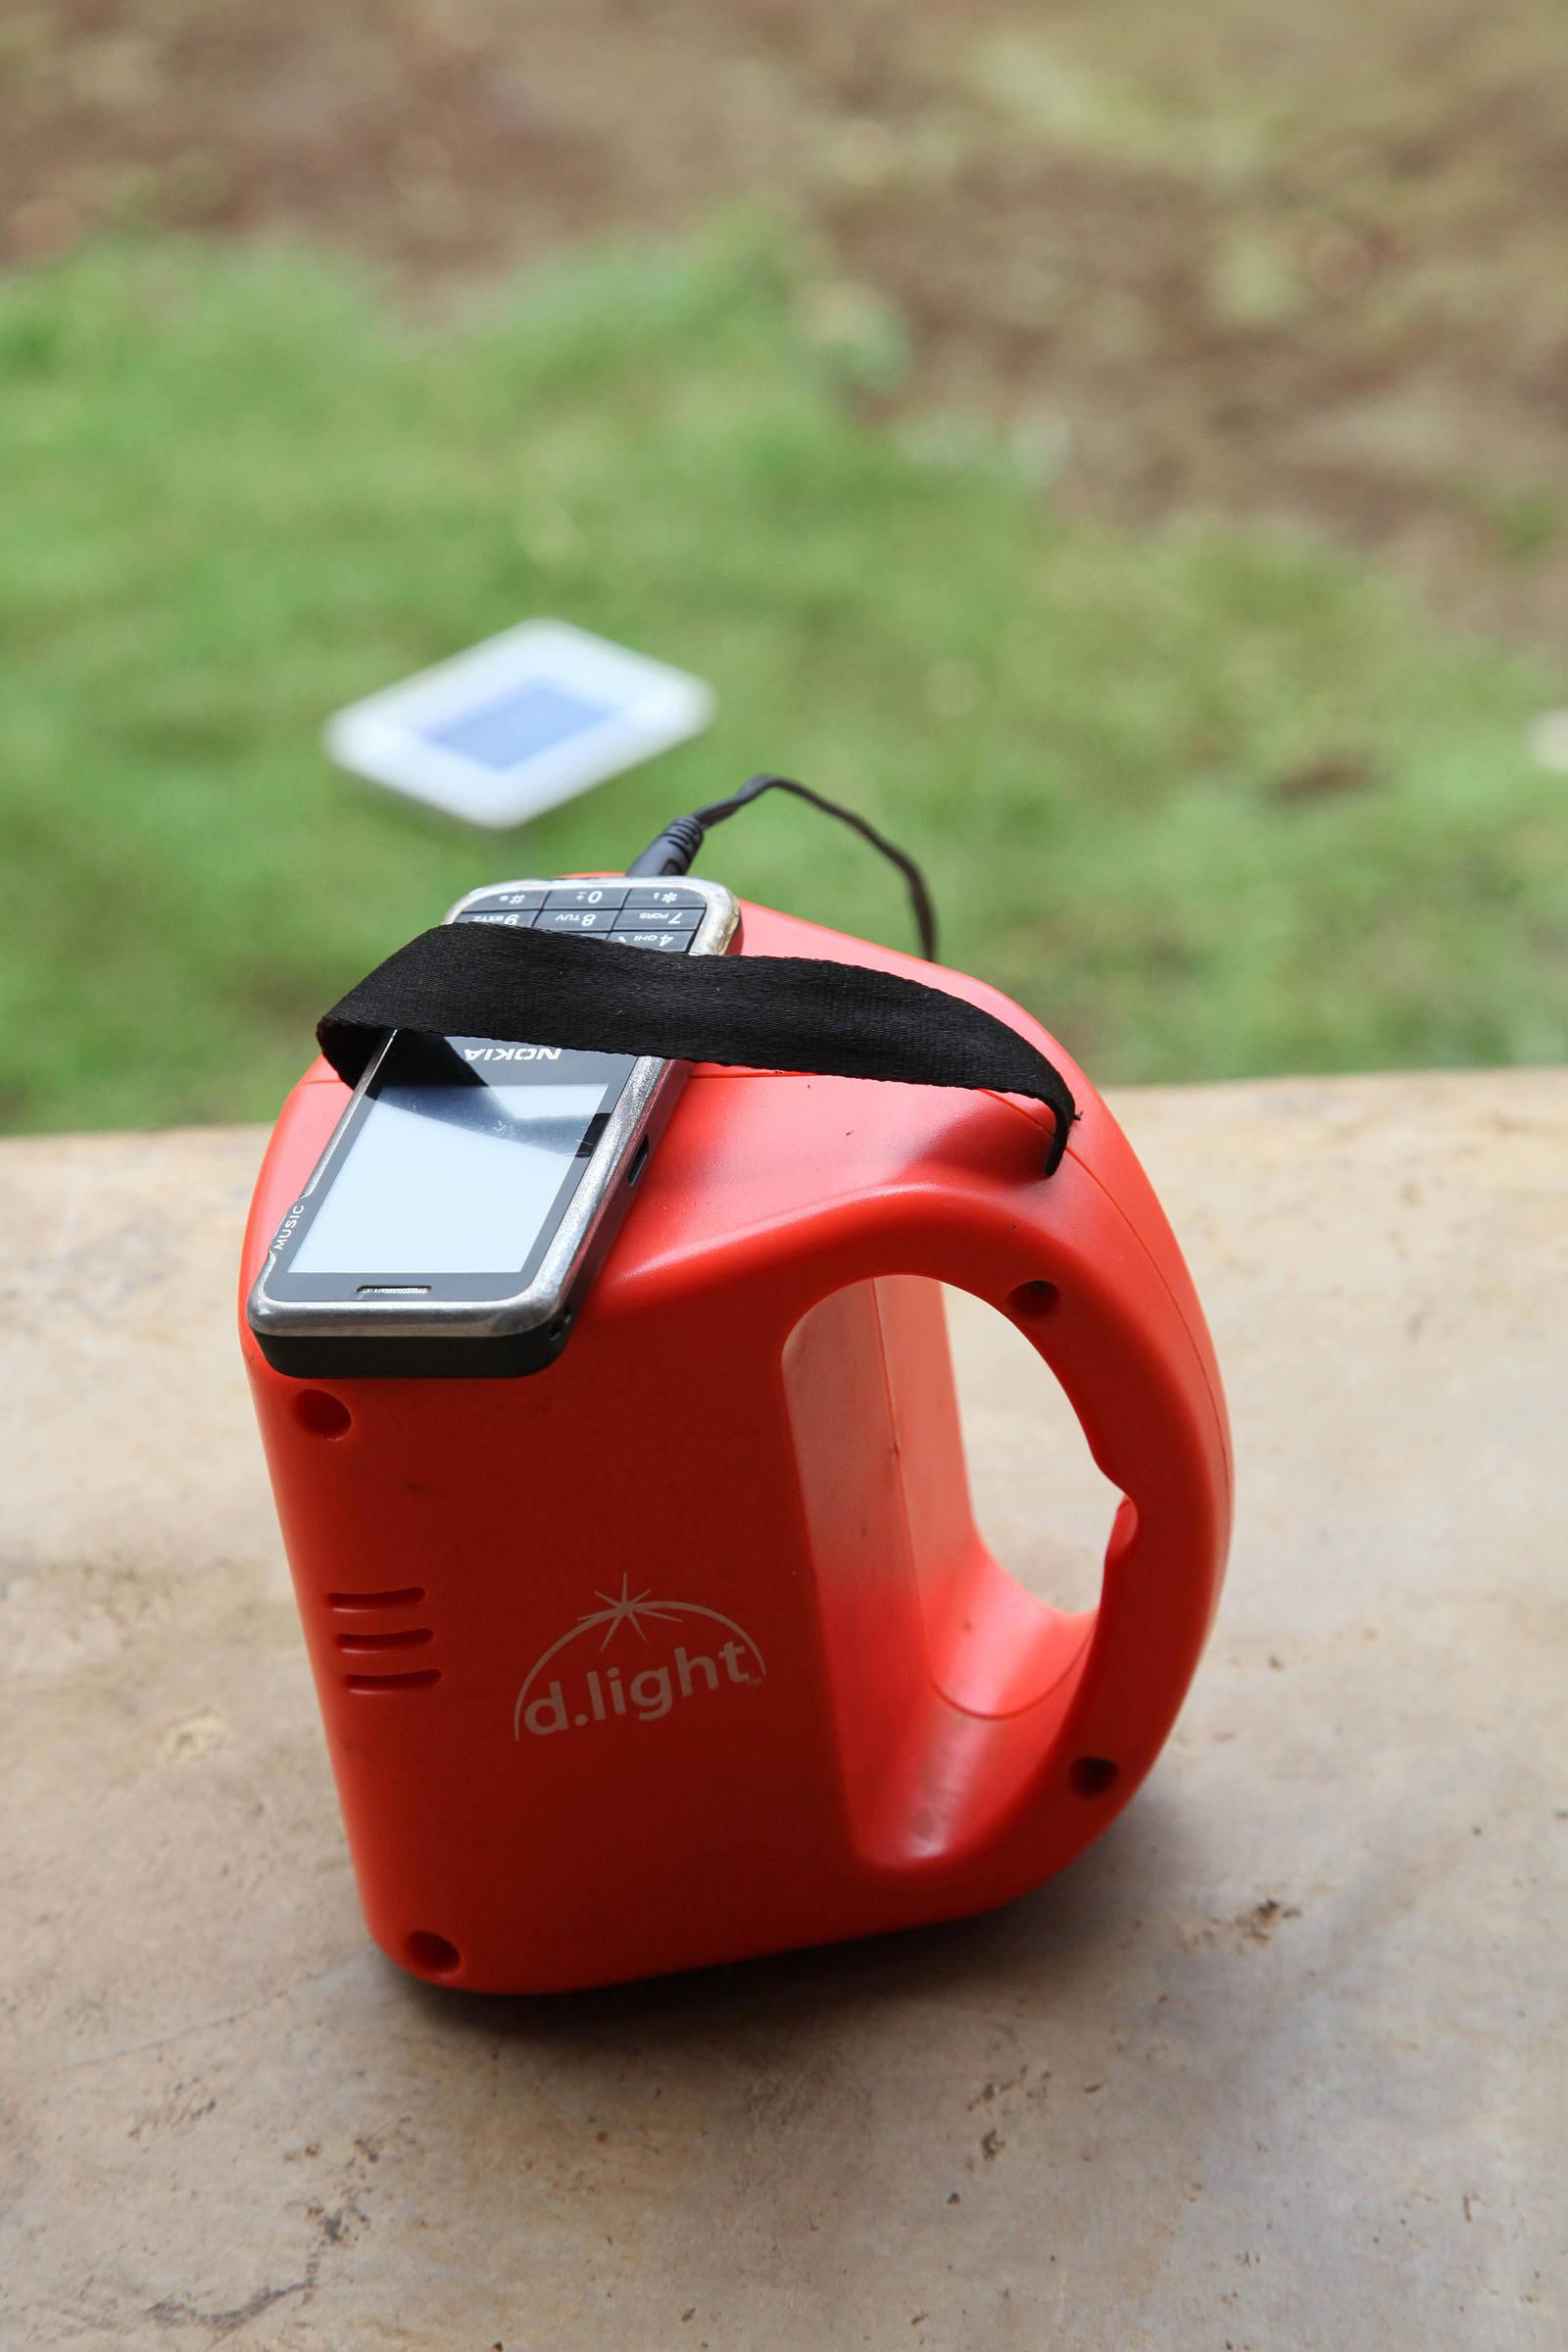 Solar lamp with a phone charger